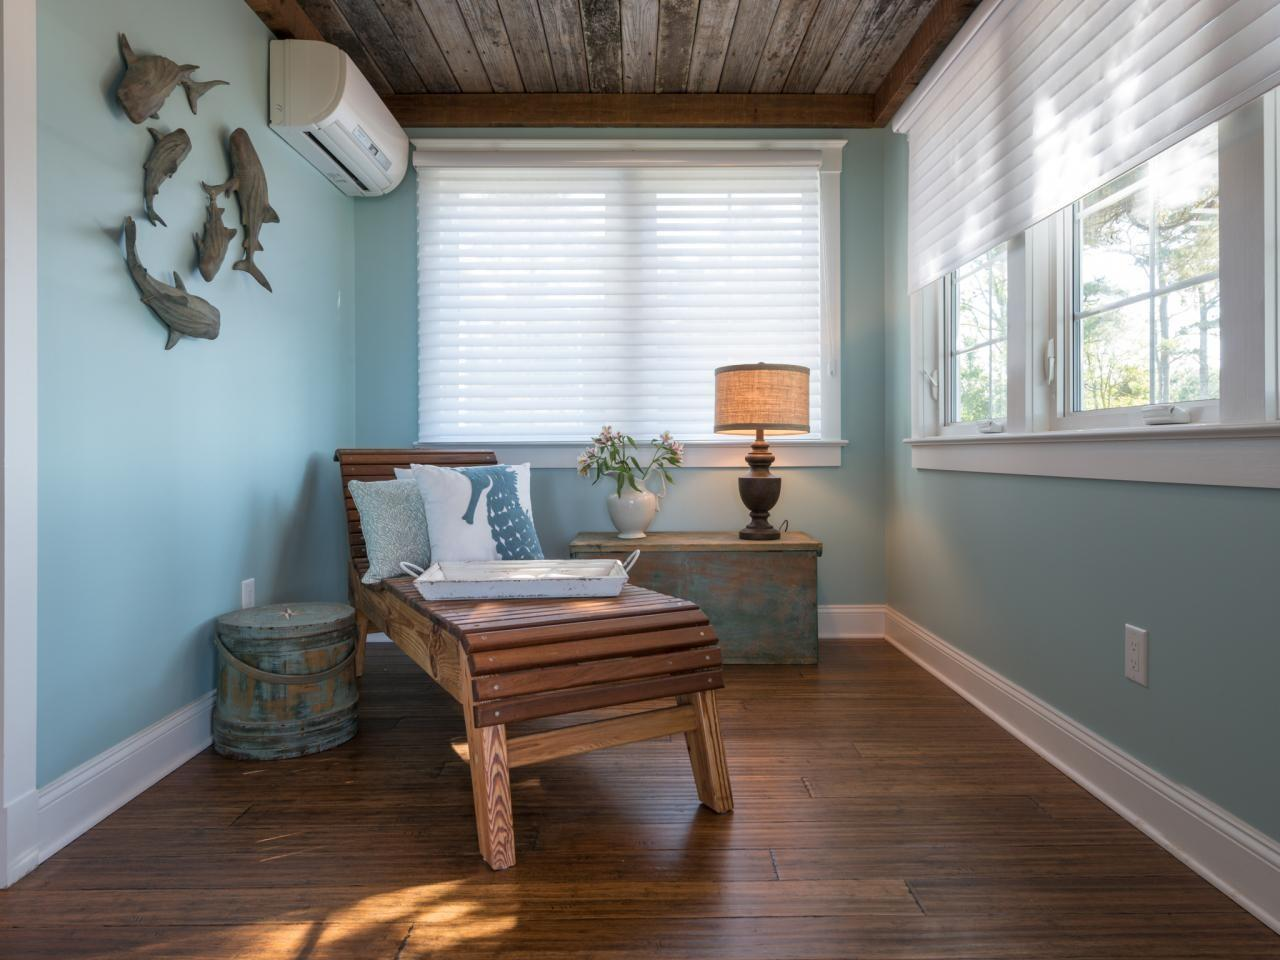 Install Reclaimed Wood Ceiling Treatment